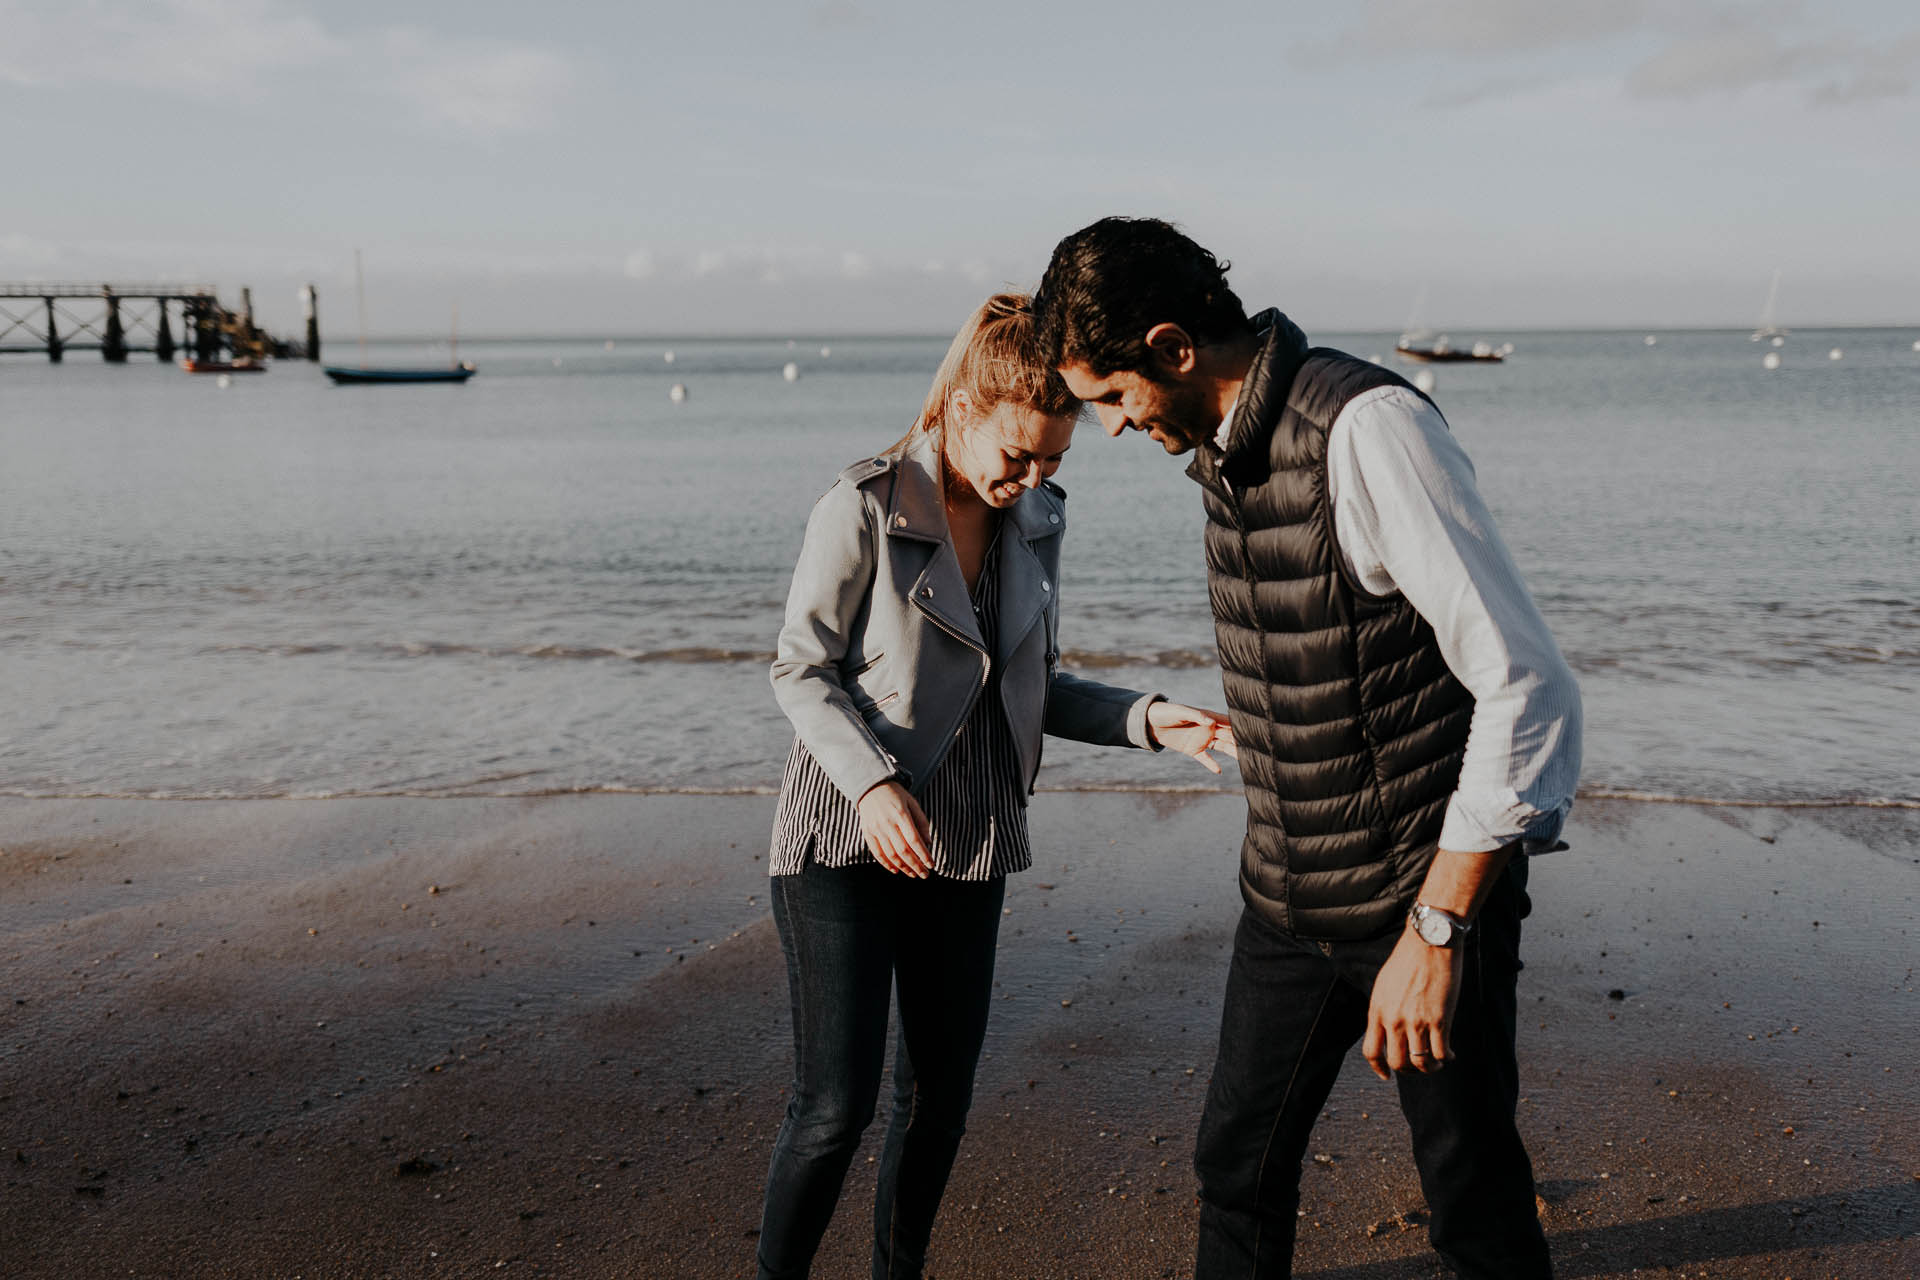 séance_engagement_noirmoutier_flavie_nelly_photographe_nantes-34